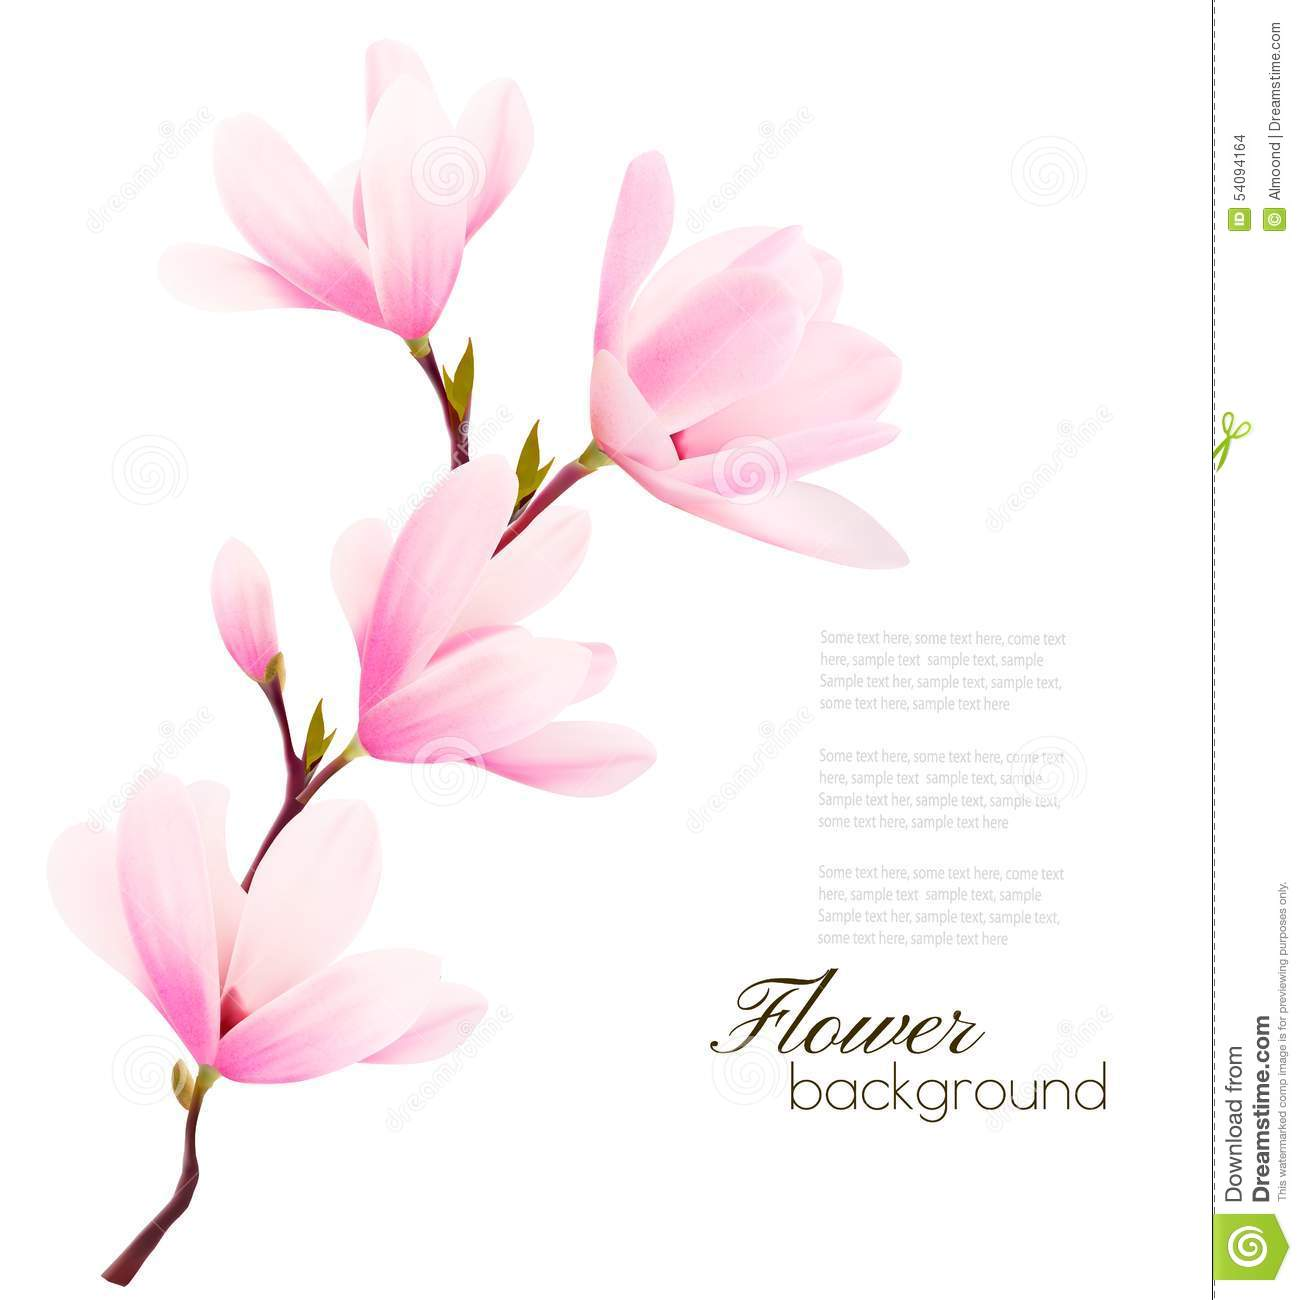 Flower Background With Blossom Branch Of Pink Flowers Stock Vector